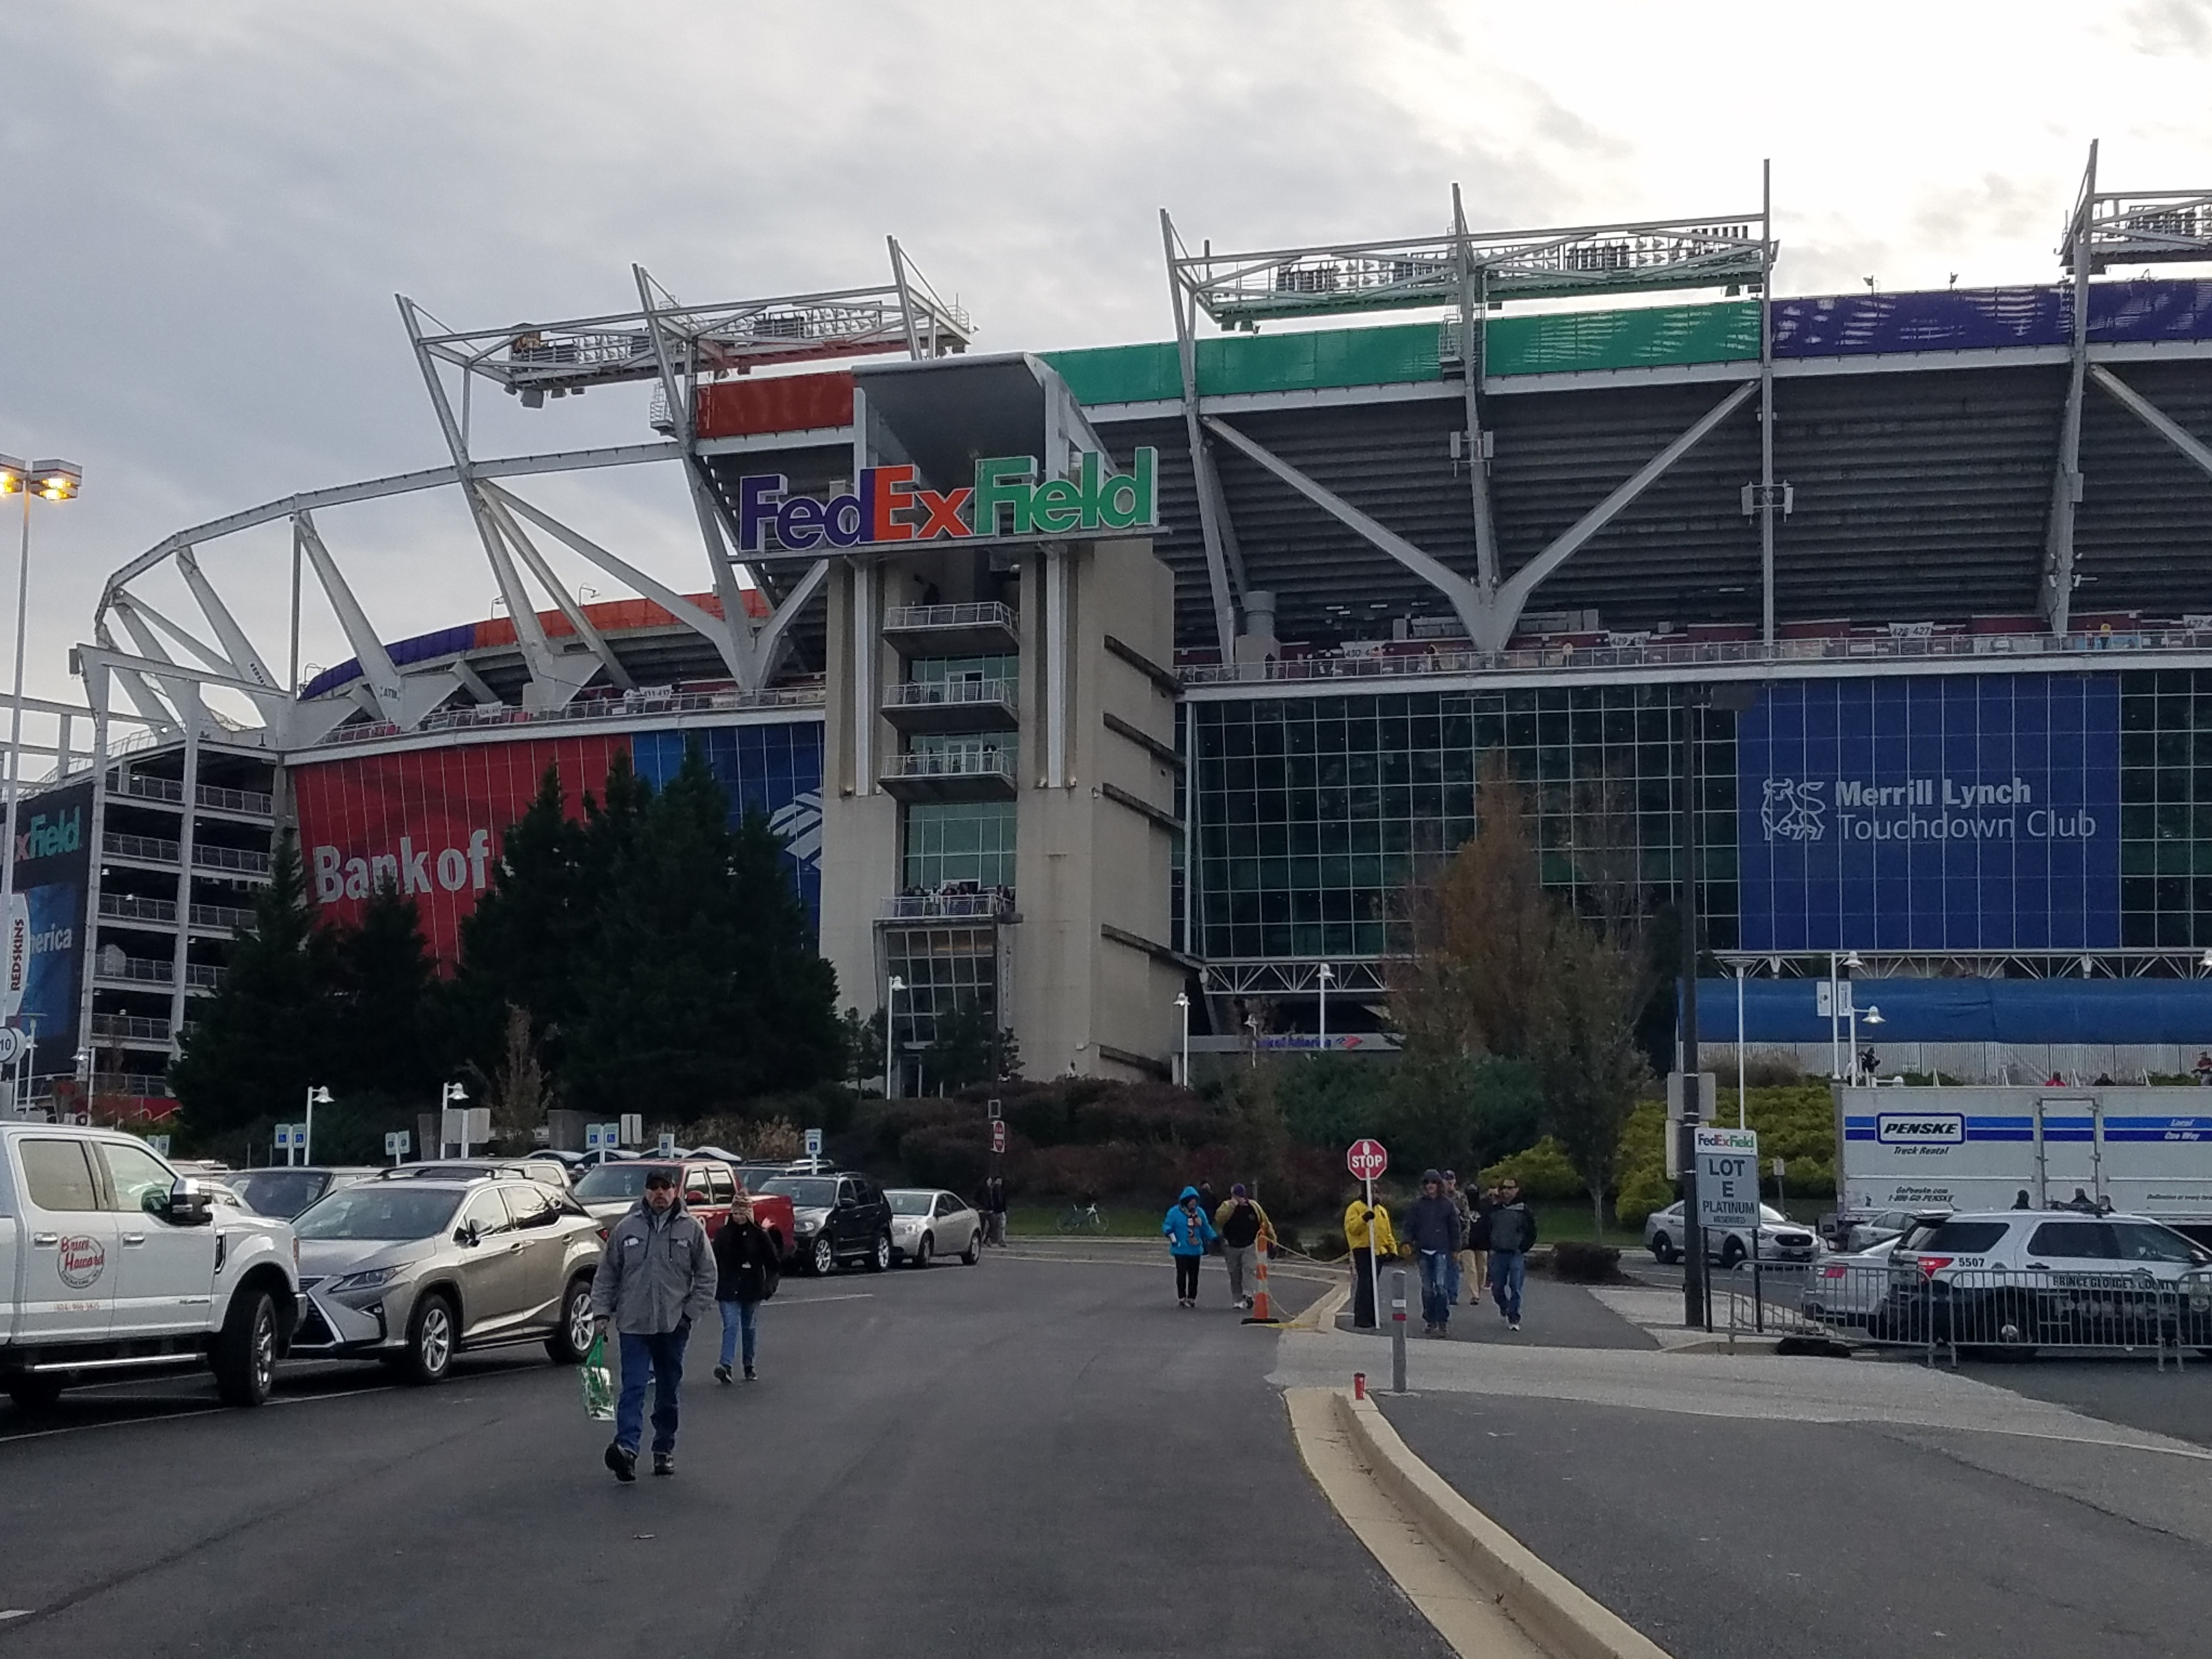 FedEx Field in Landover, Maryland could hold 2026 World Cup matches if North America wins hosting rights. (Adam Zielonka / Capital News Service)